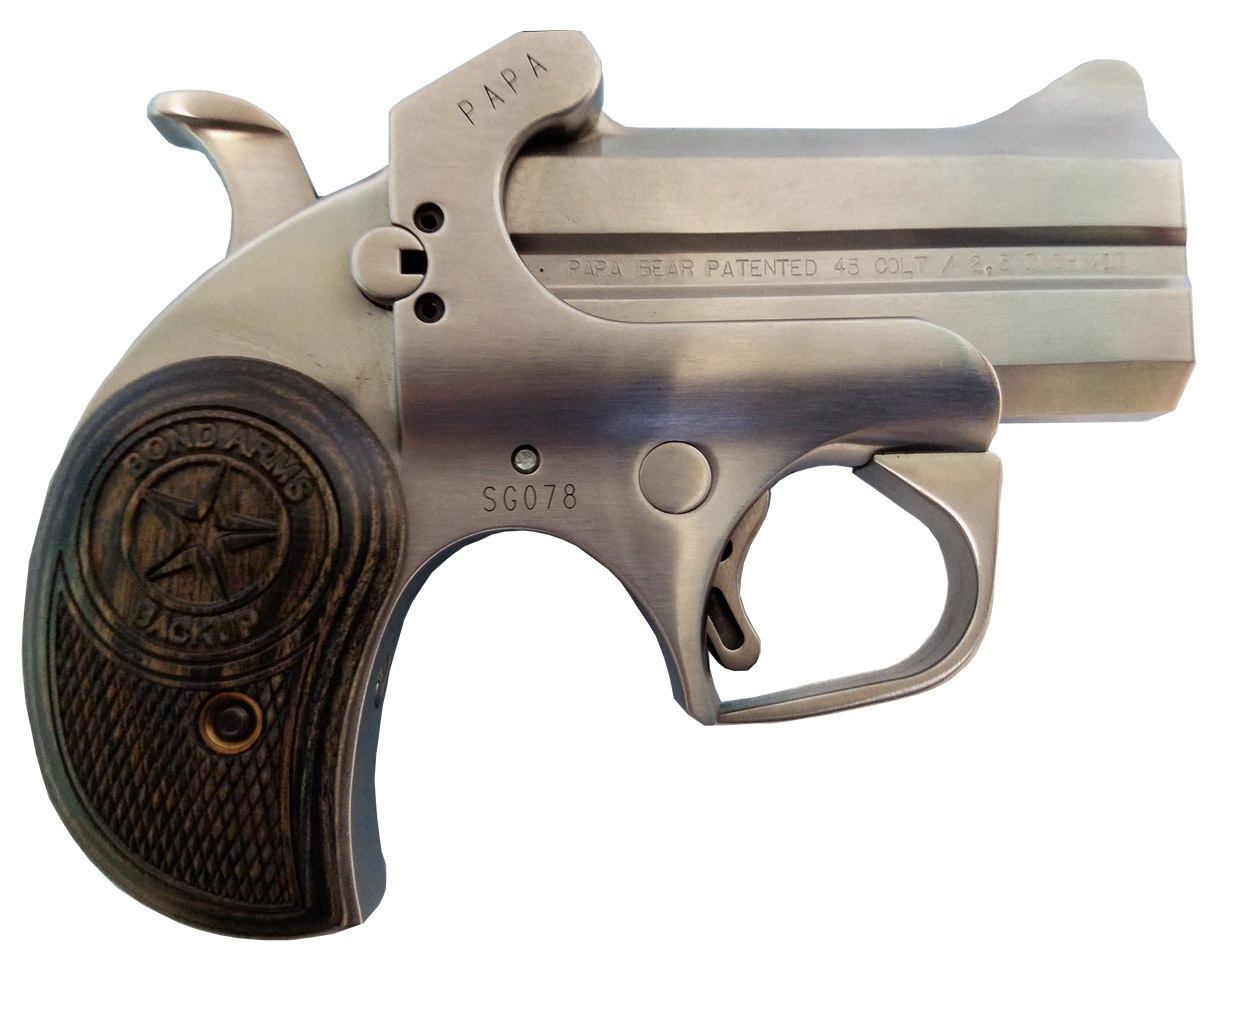 Wooden Backup Grips Bond Arms